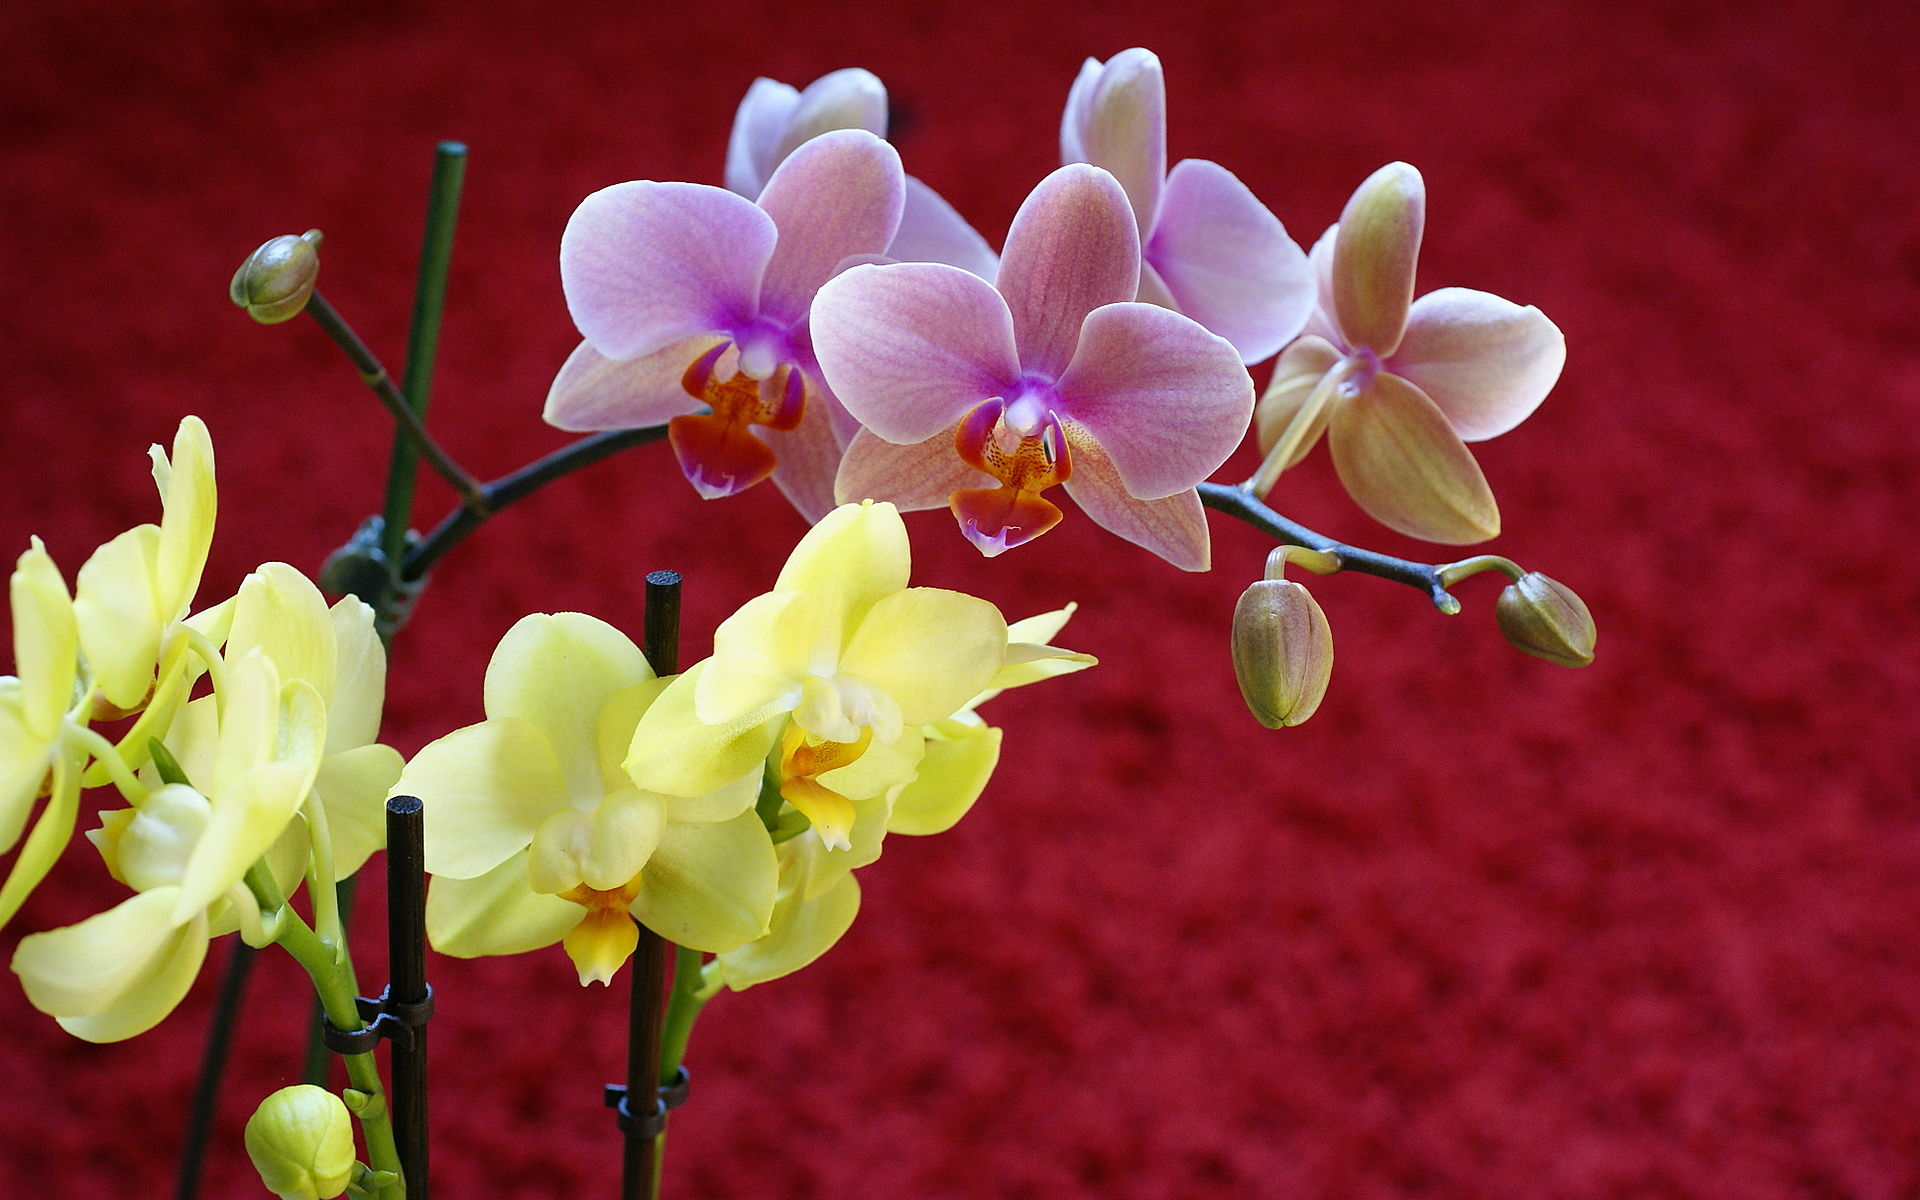 orchids wallpapers best - photo #25